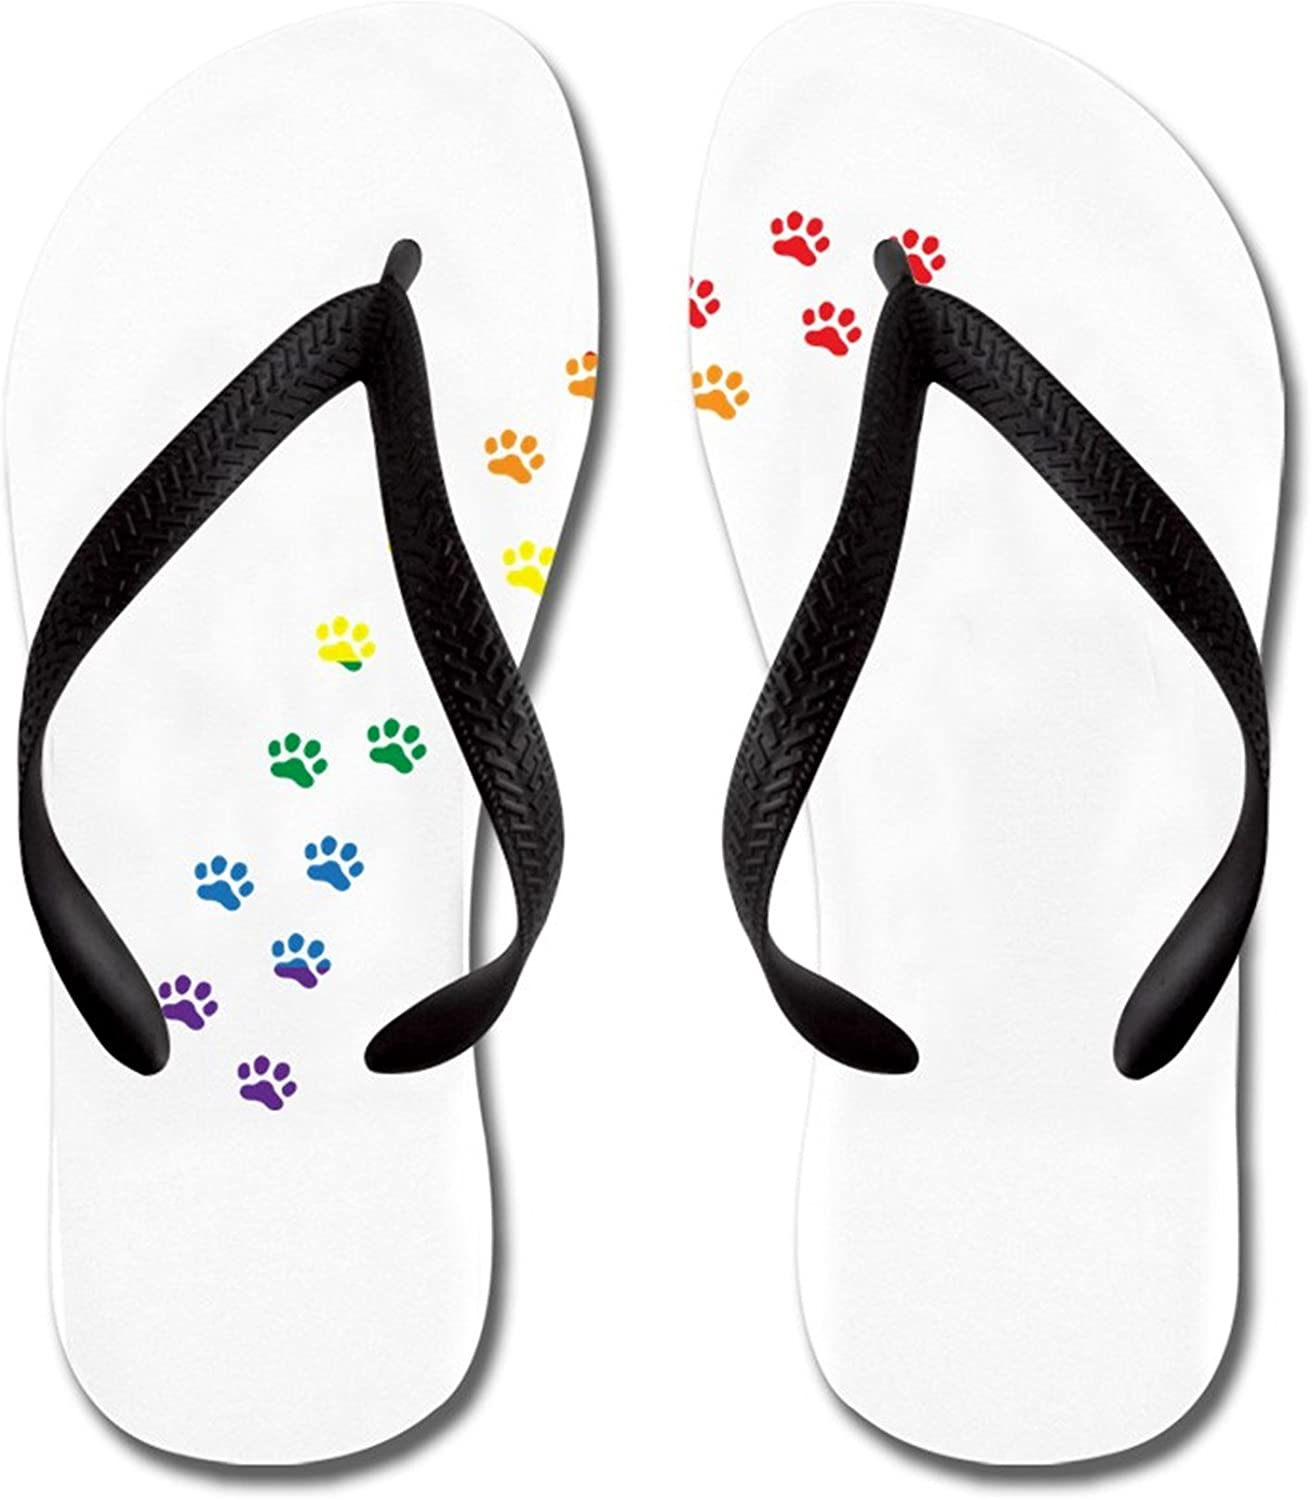 Lplpol Rainbow Paws Flip Flops for Kids and Adult Unisex Beach Sandals Pool Shoes Party Slippers